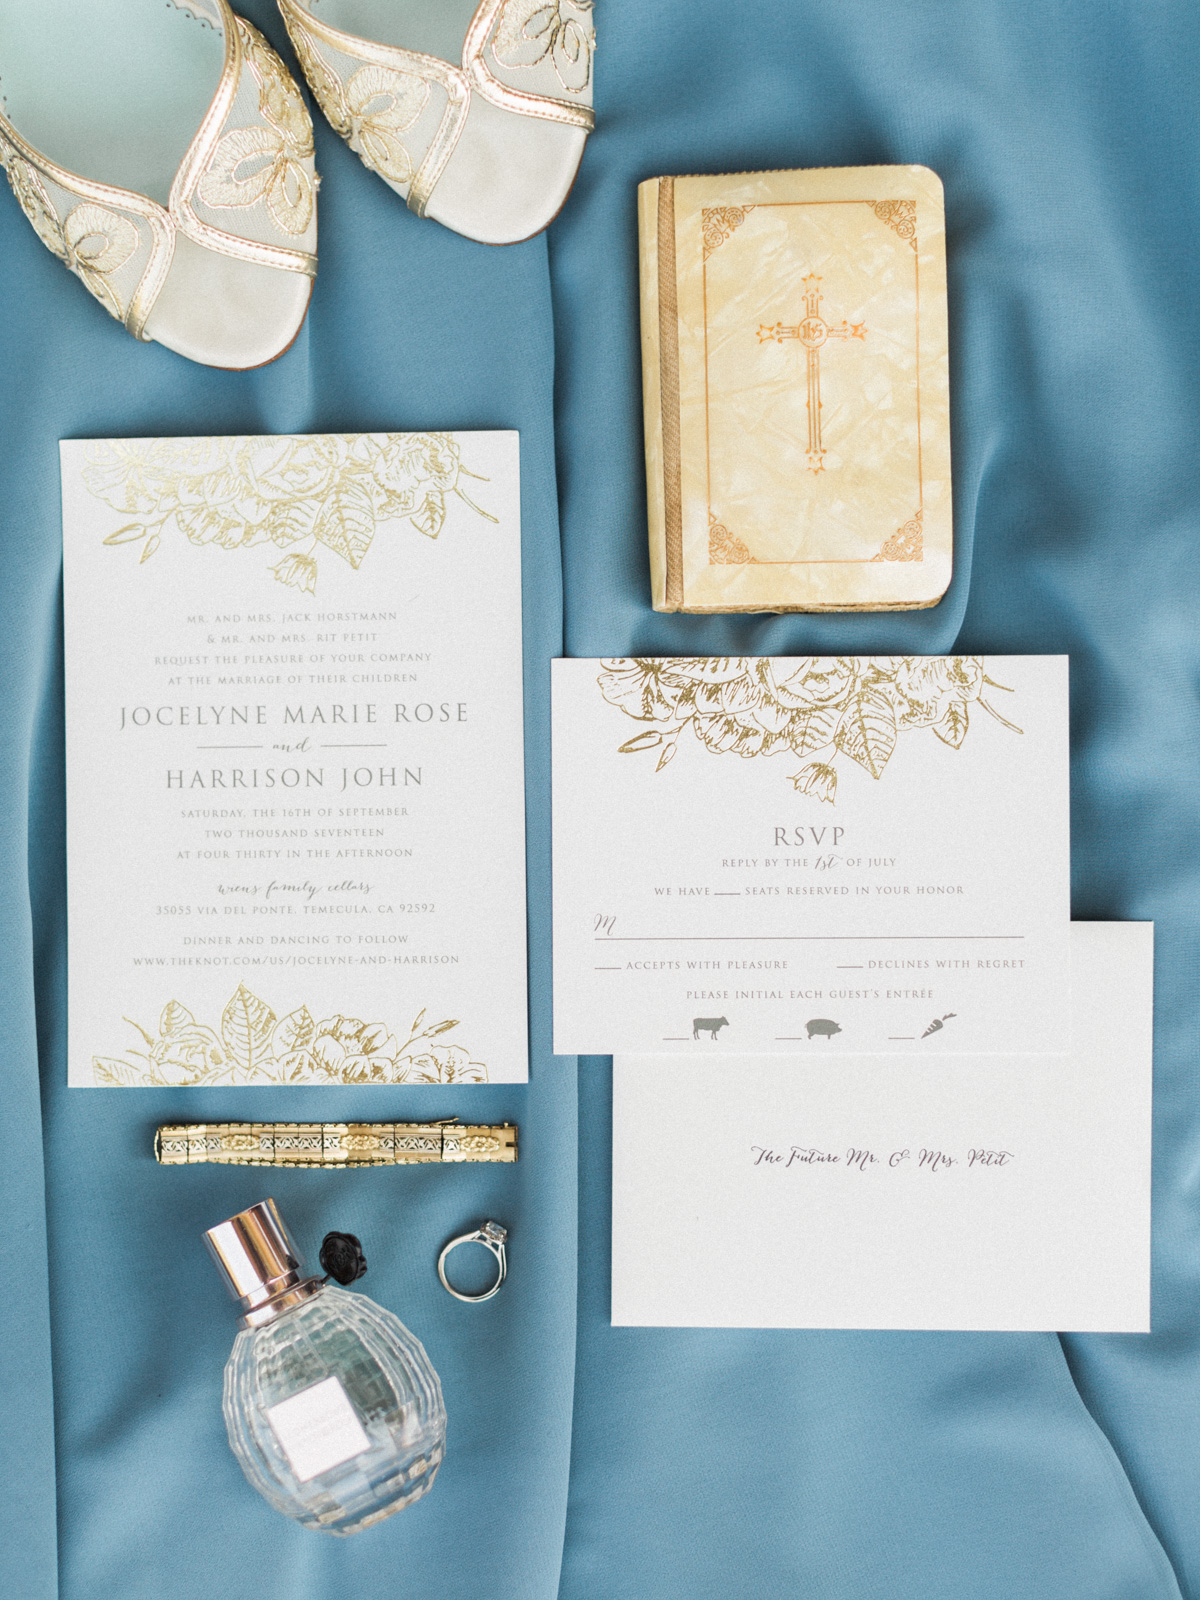 Beautiful wedding invitation from Minted.com! Harrison & Jocelyne's gorgeous Temecula wedding at Wiens Family Cellars captured by Betsy & John Photography